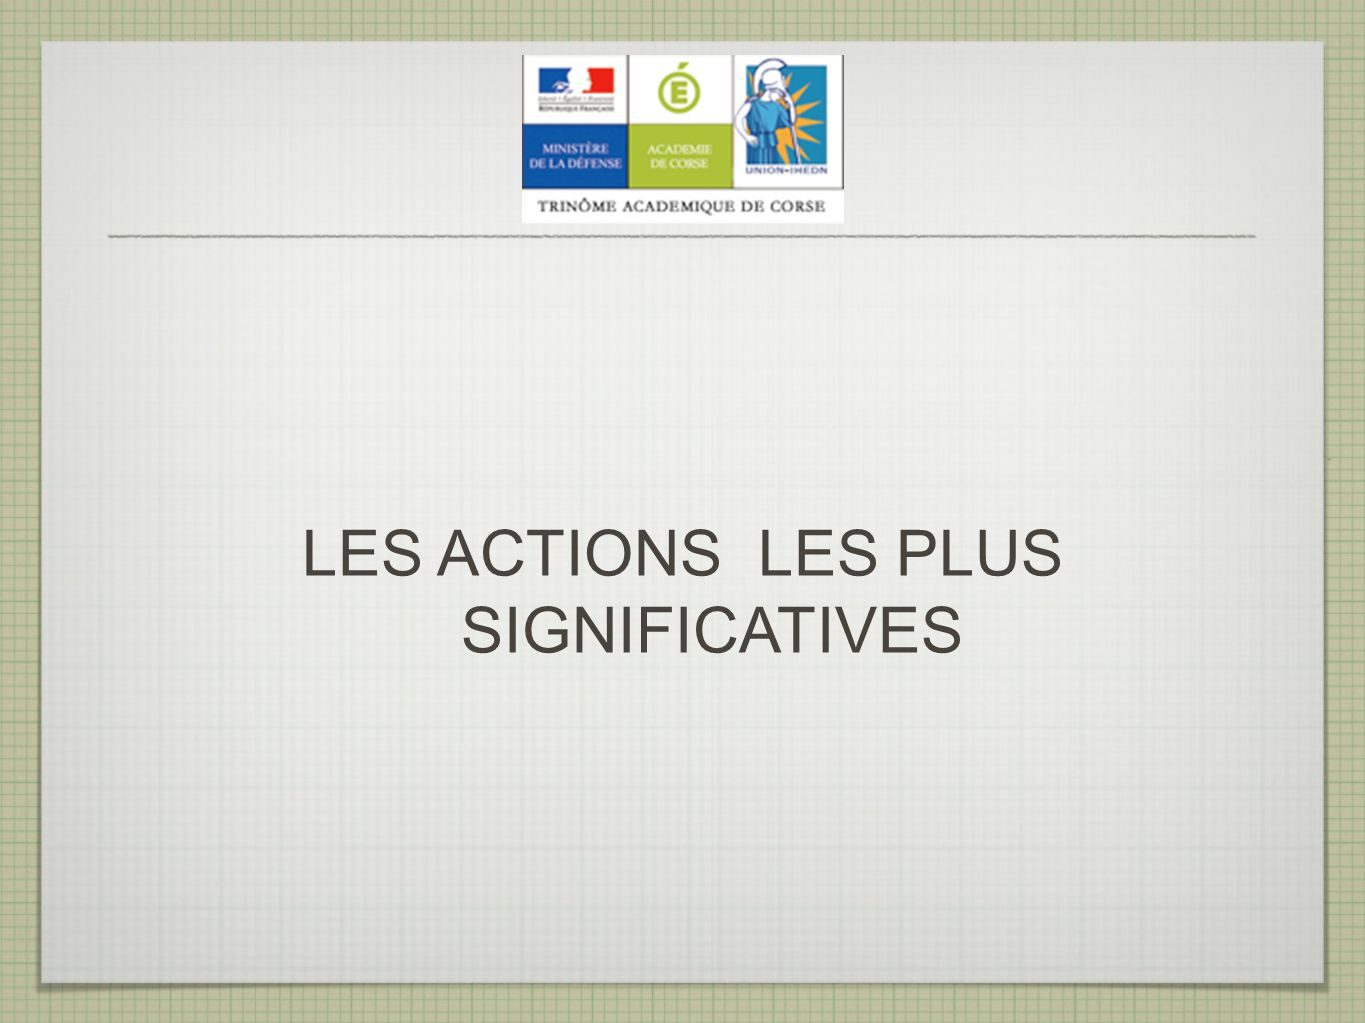 LES ACTIONS LES PLUS SIGNIFICATIVES